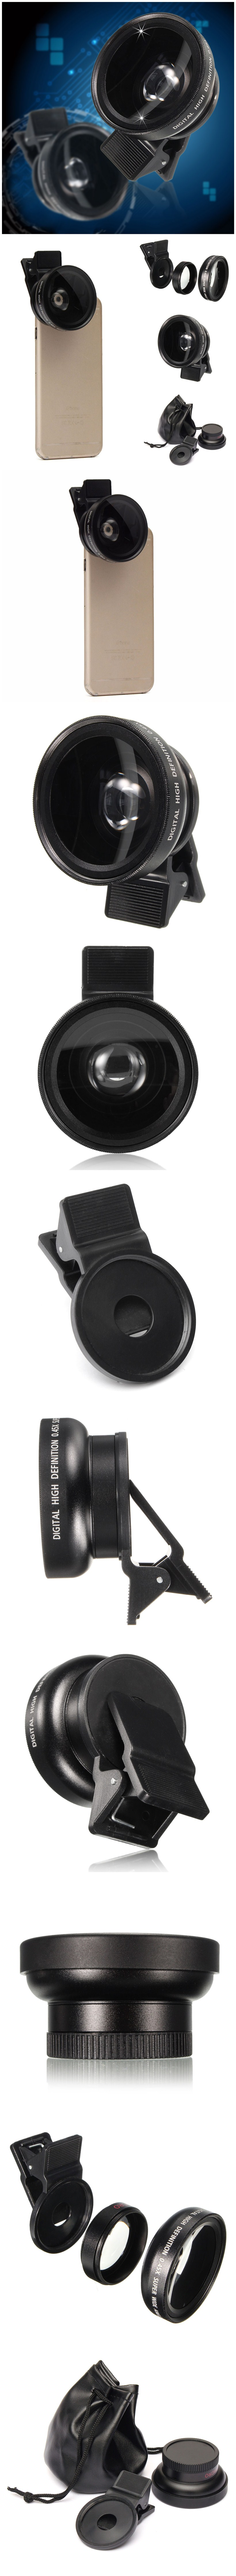 Universal 0.45X Wide Angle 12.5X Macro HD 2 in 1 Camera Lens For iPhone Mobile Phones